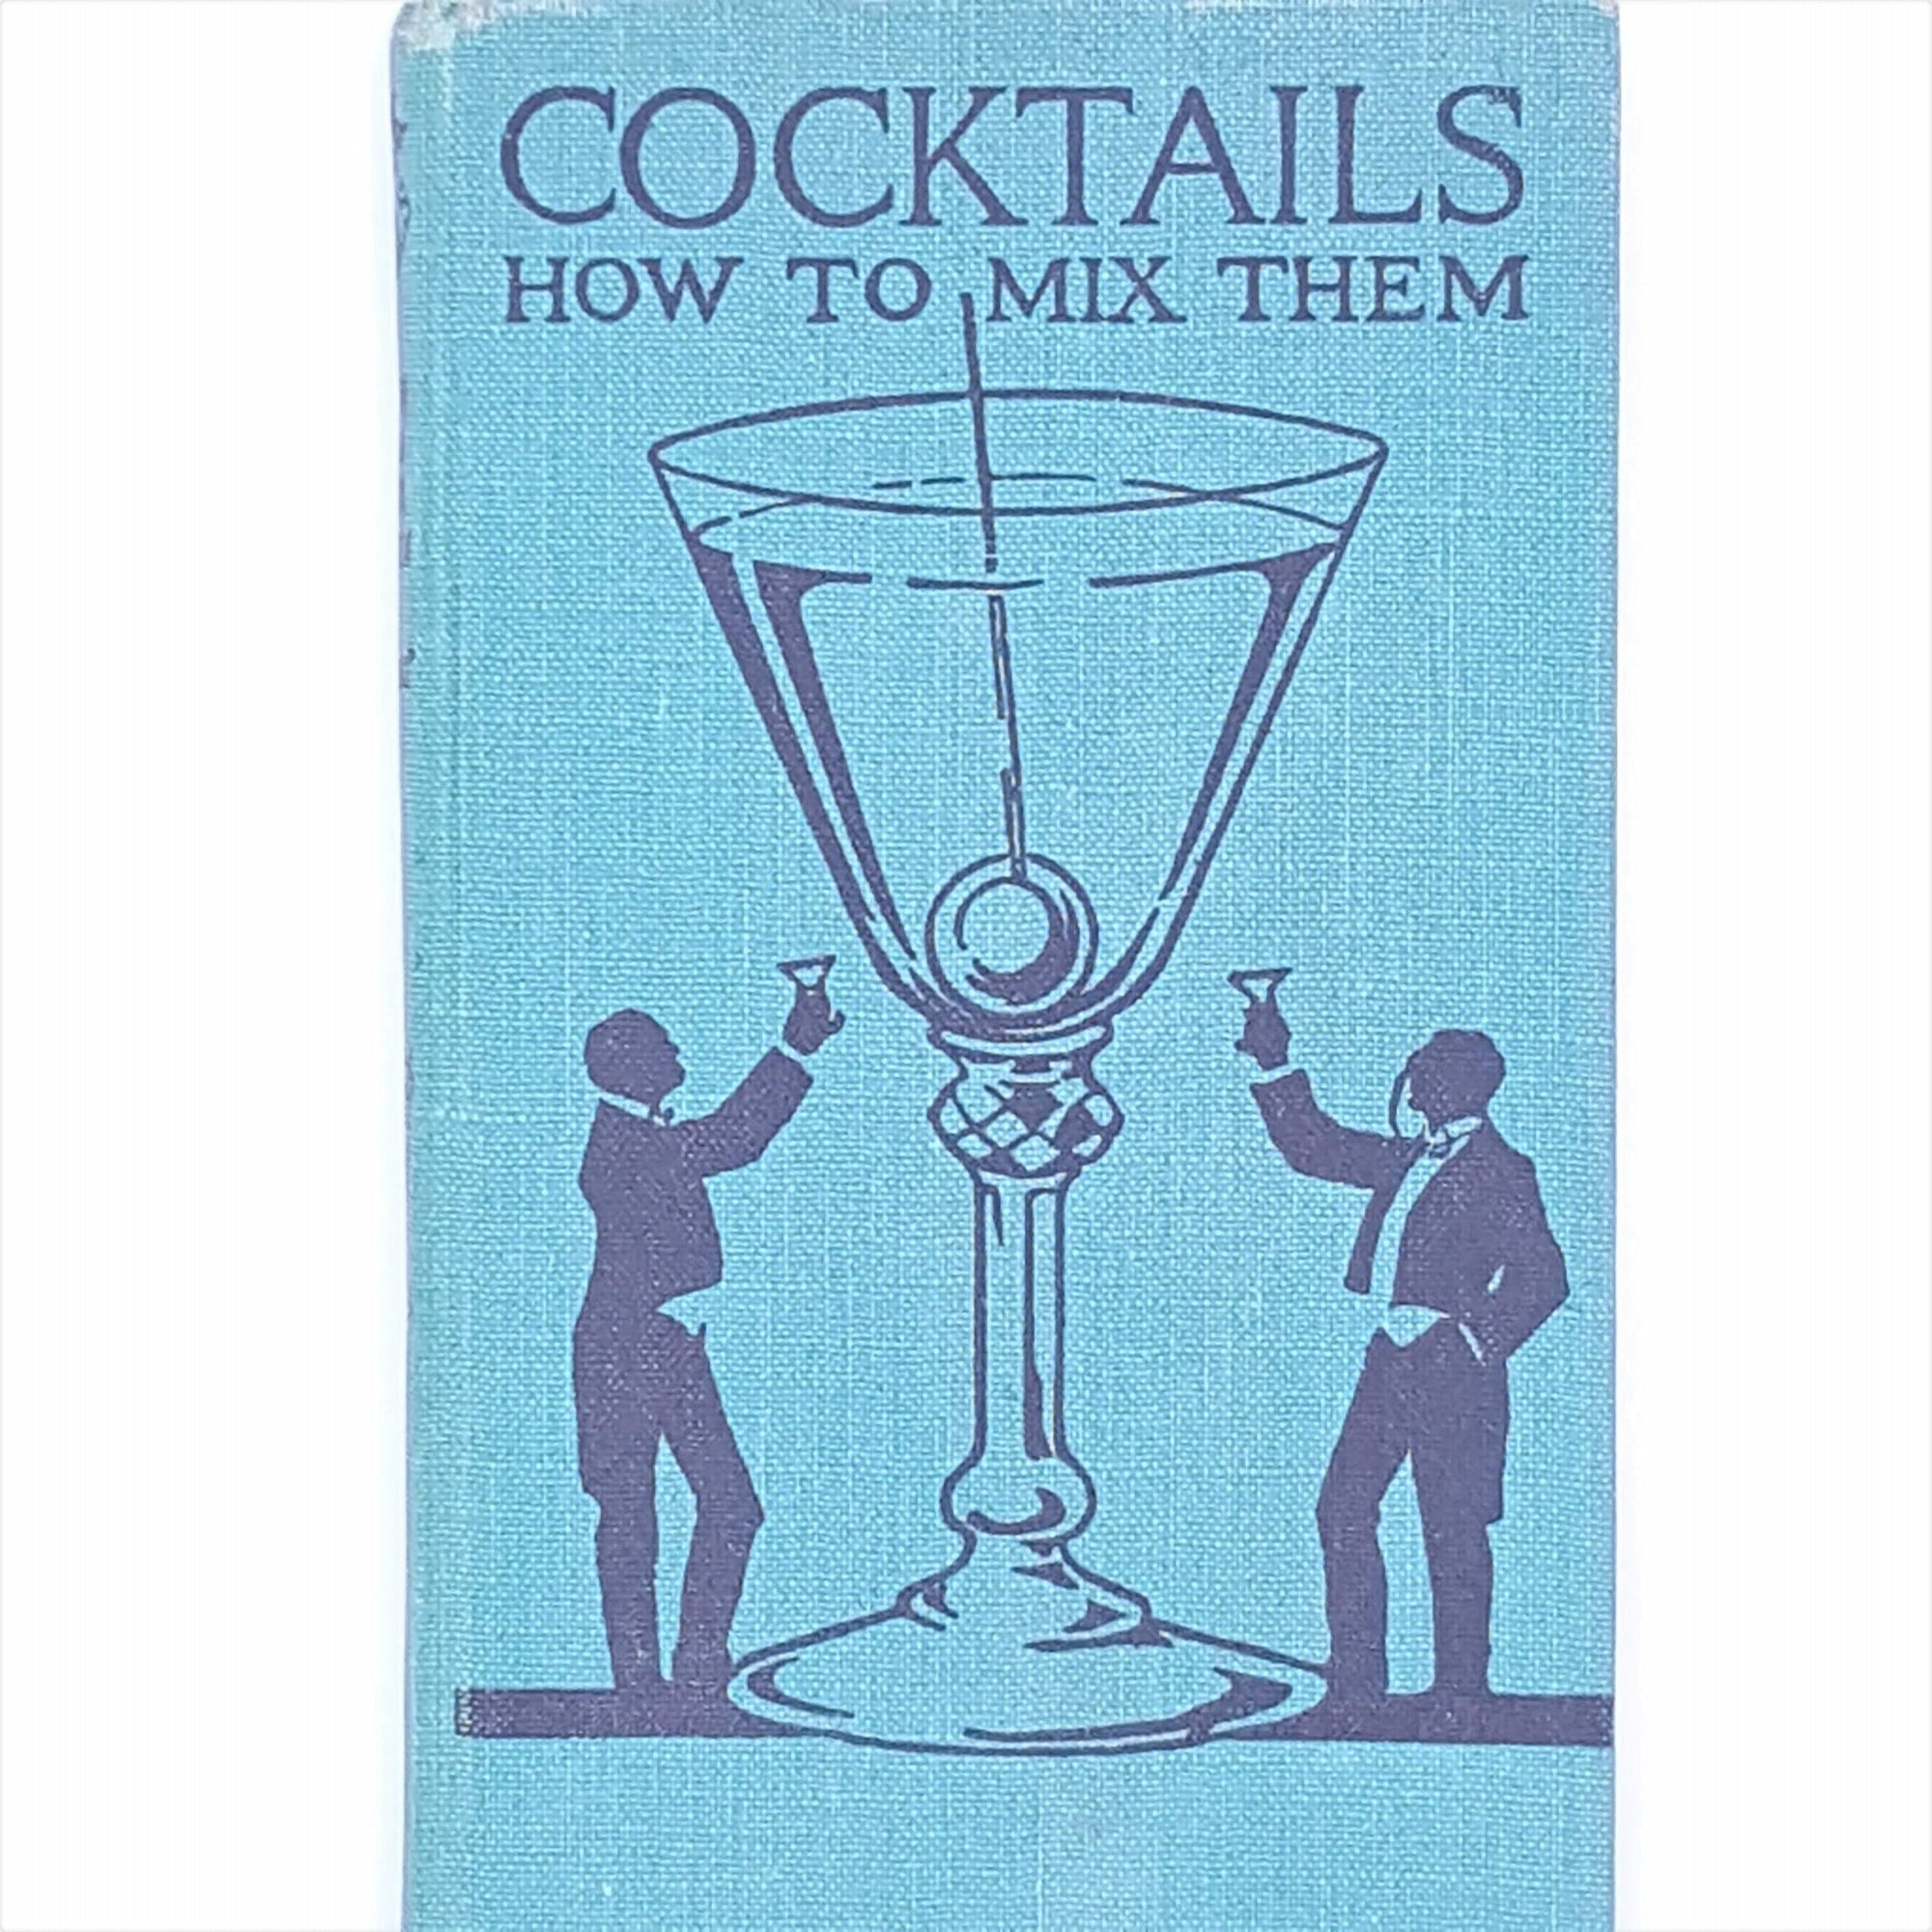 Cocktails and How to Mix Them by 'Robert' 1950